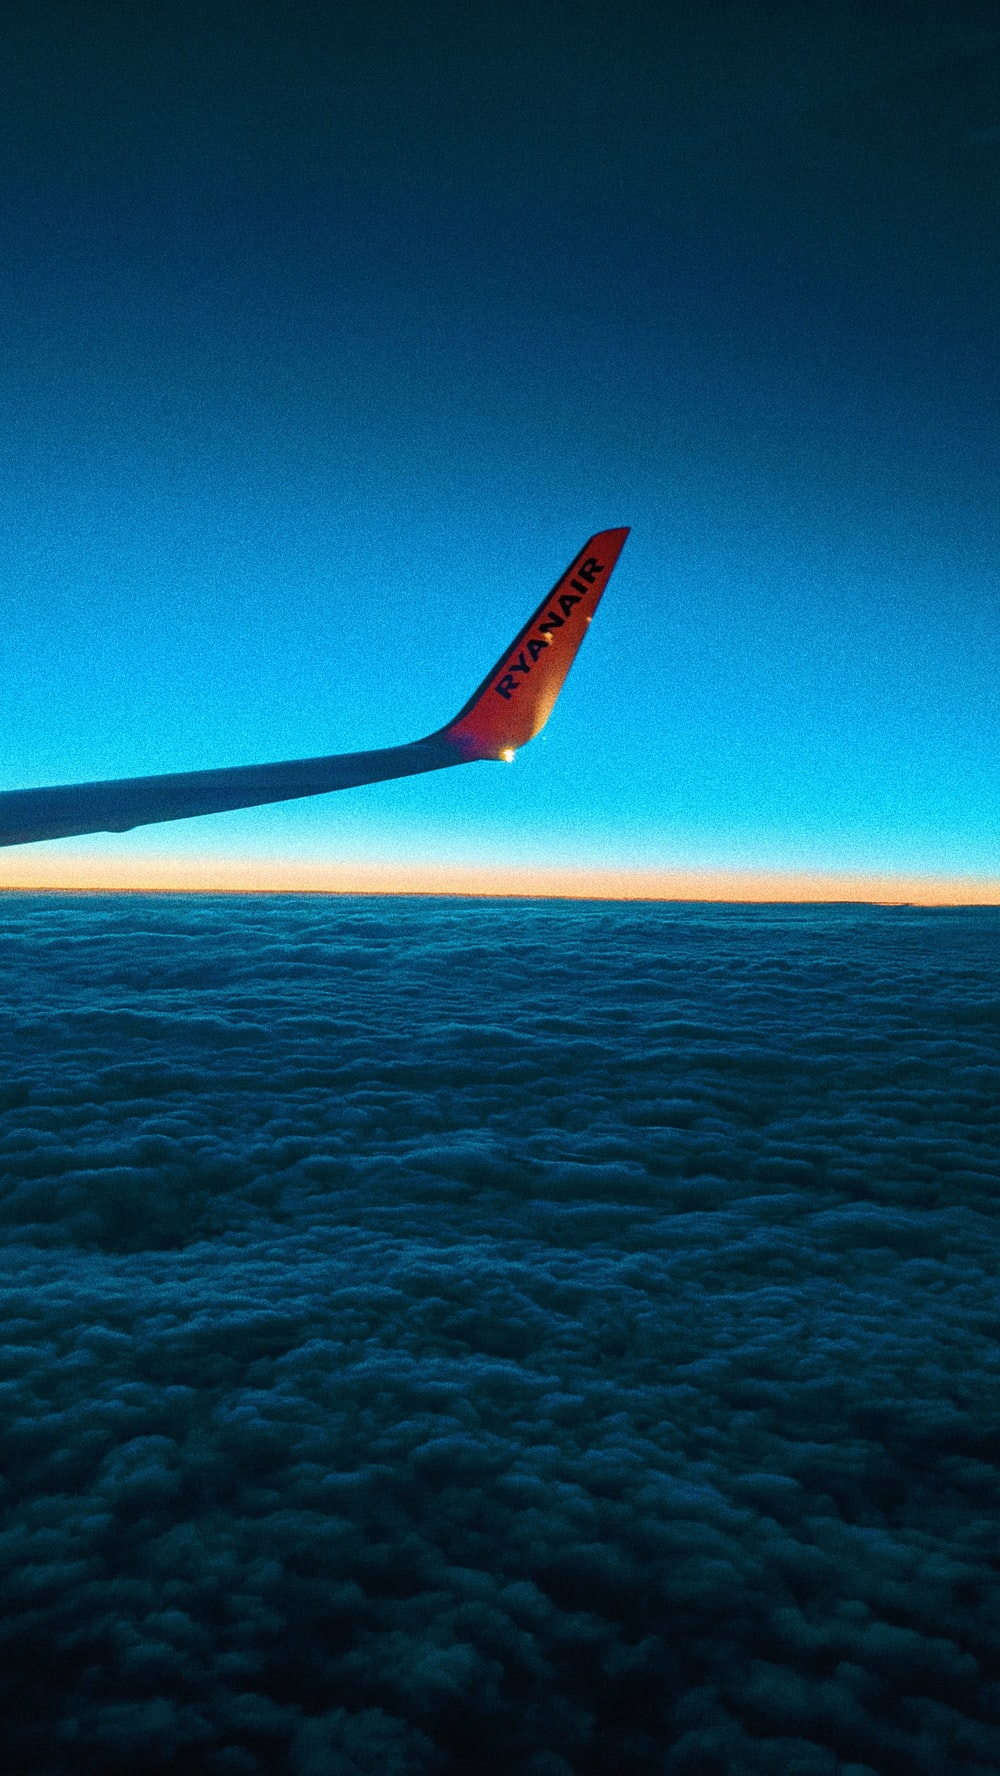 airplane wing over the sea during daytime